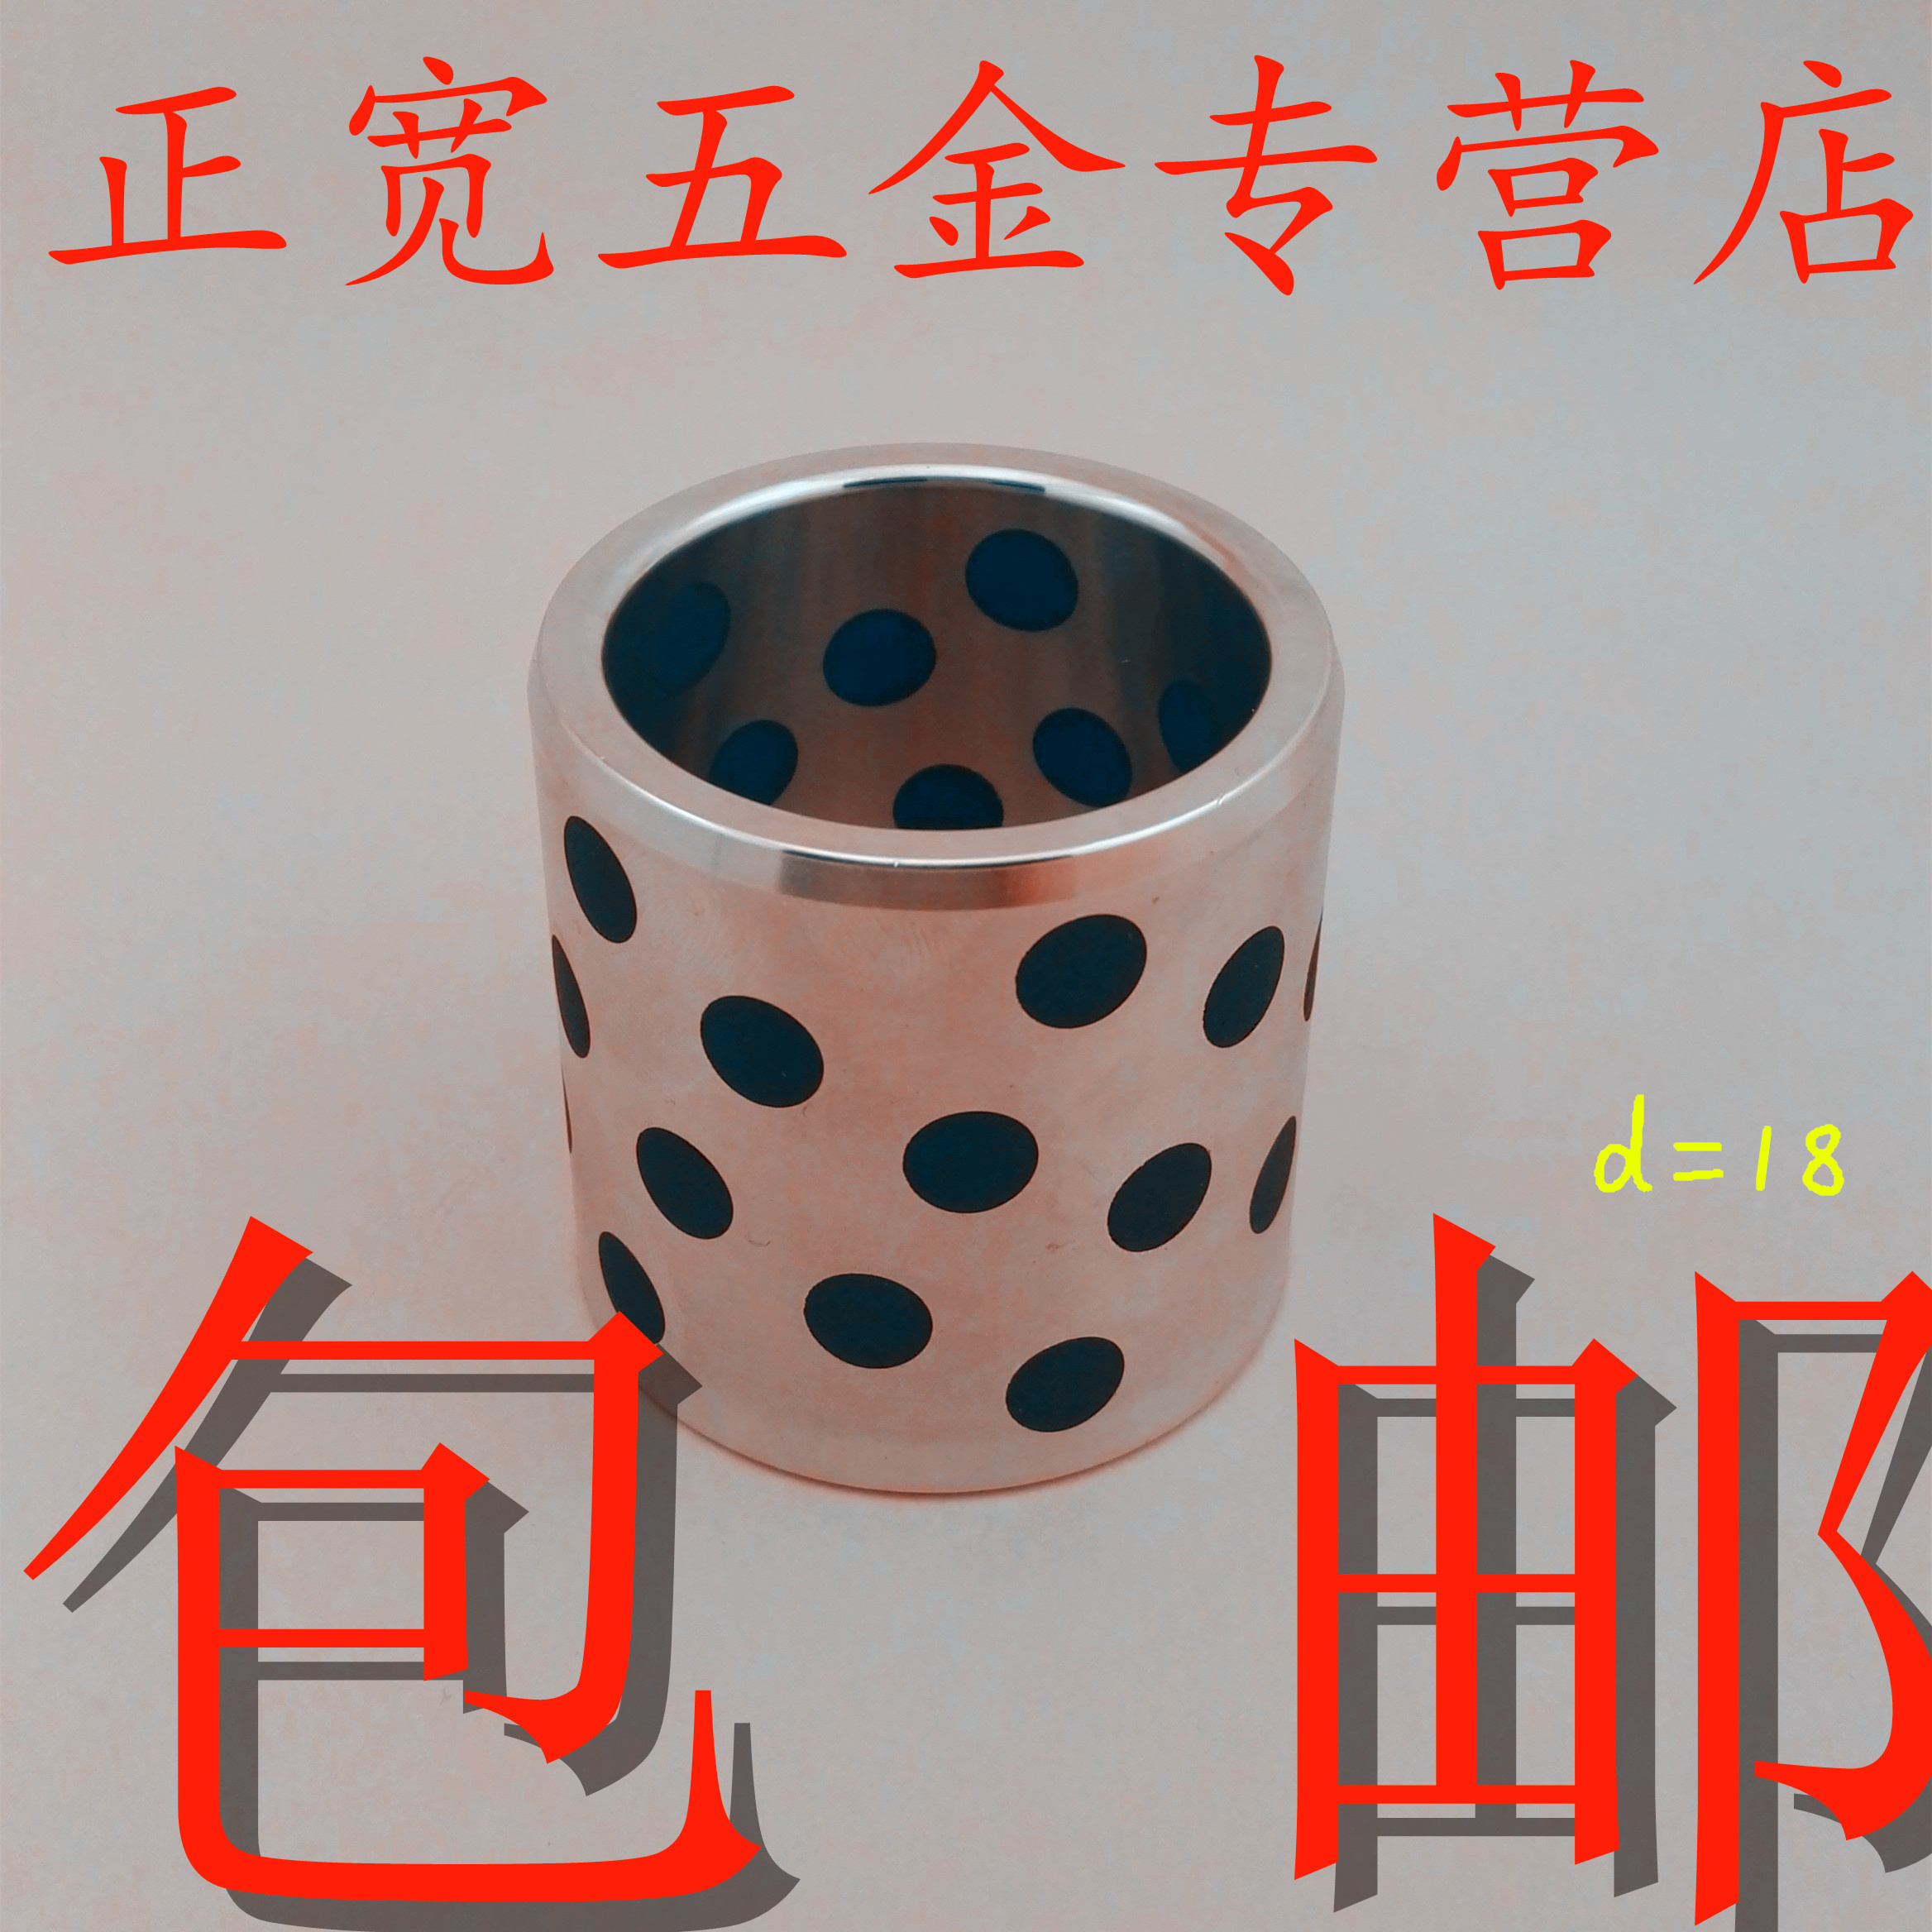 Jdb inlaid solid self lubricating graphite oil bearing/bushing without oil/graphite copper sleeve inside diameter of 18